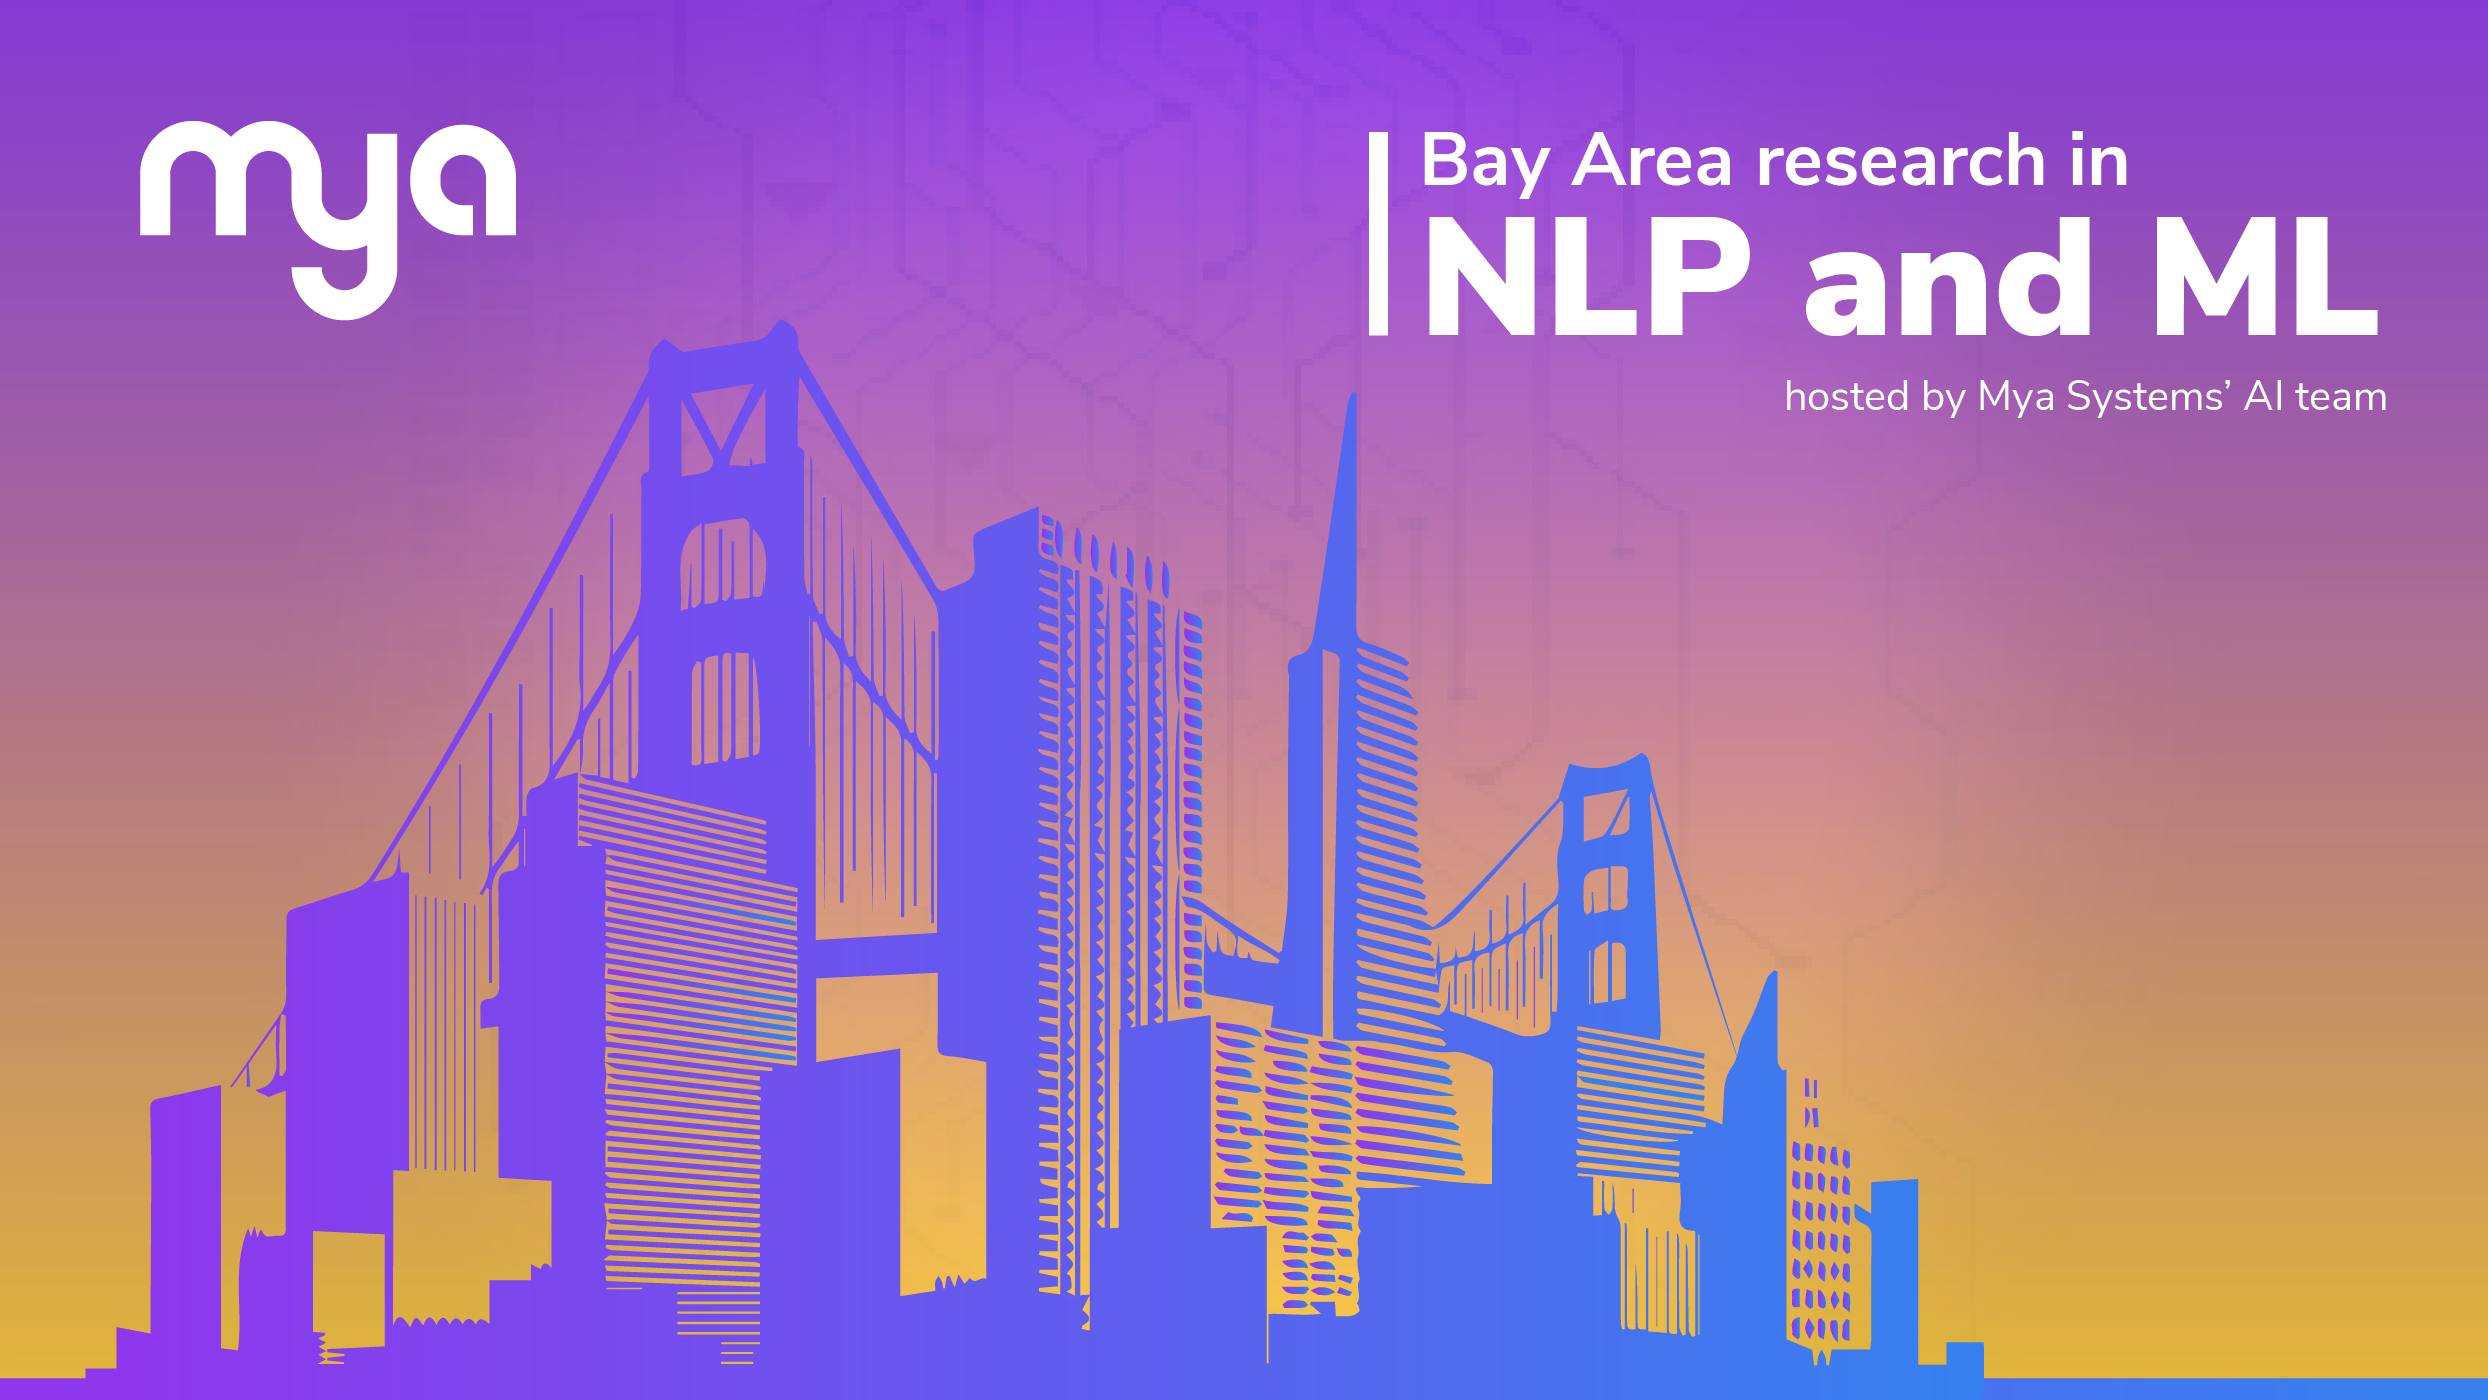 Bay Area Research in NLP and ML